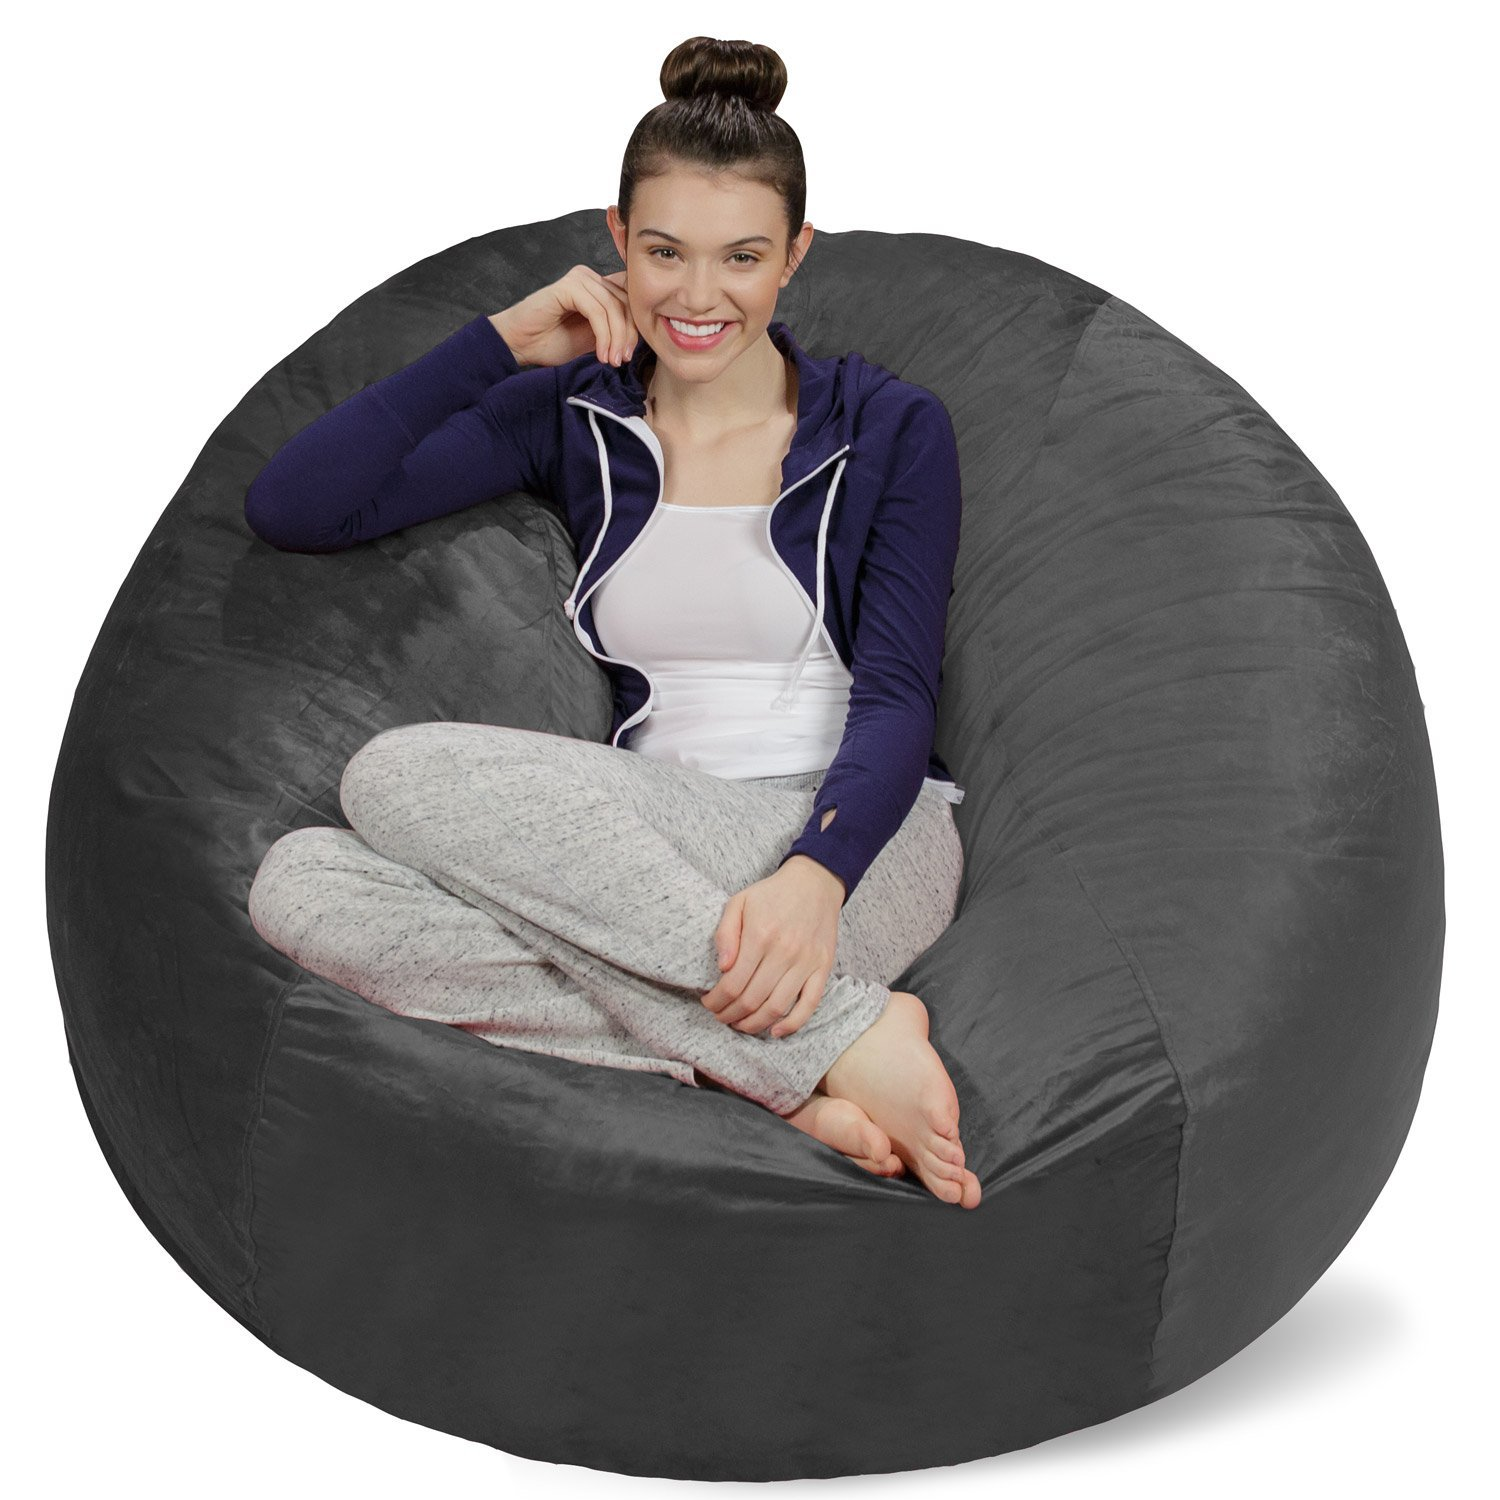 Amazoncom Sofa Sack Bean Bags Bean Bag Chair 5Feet Charcoal